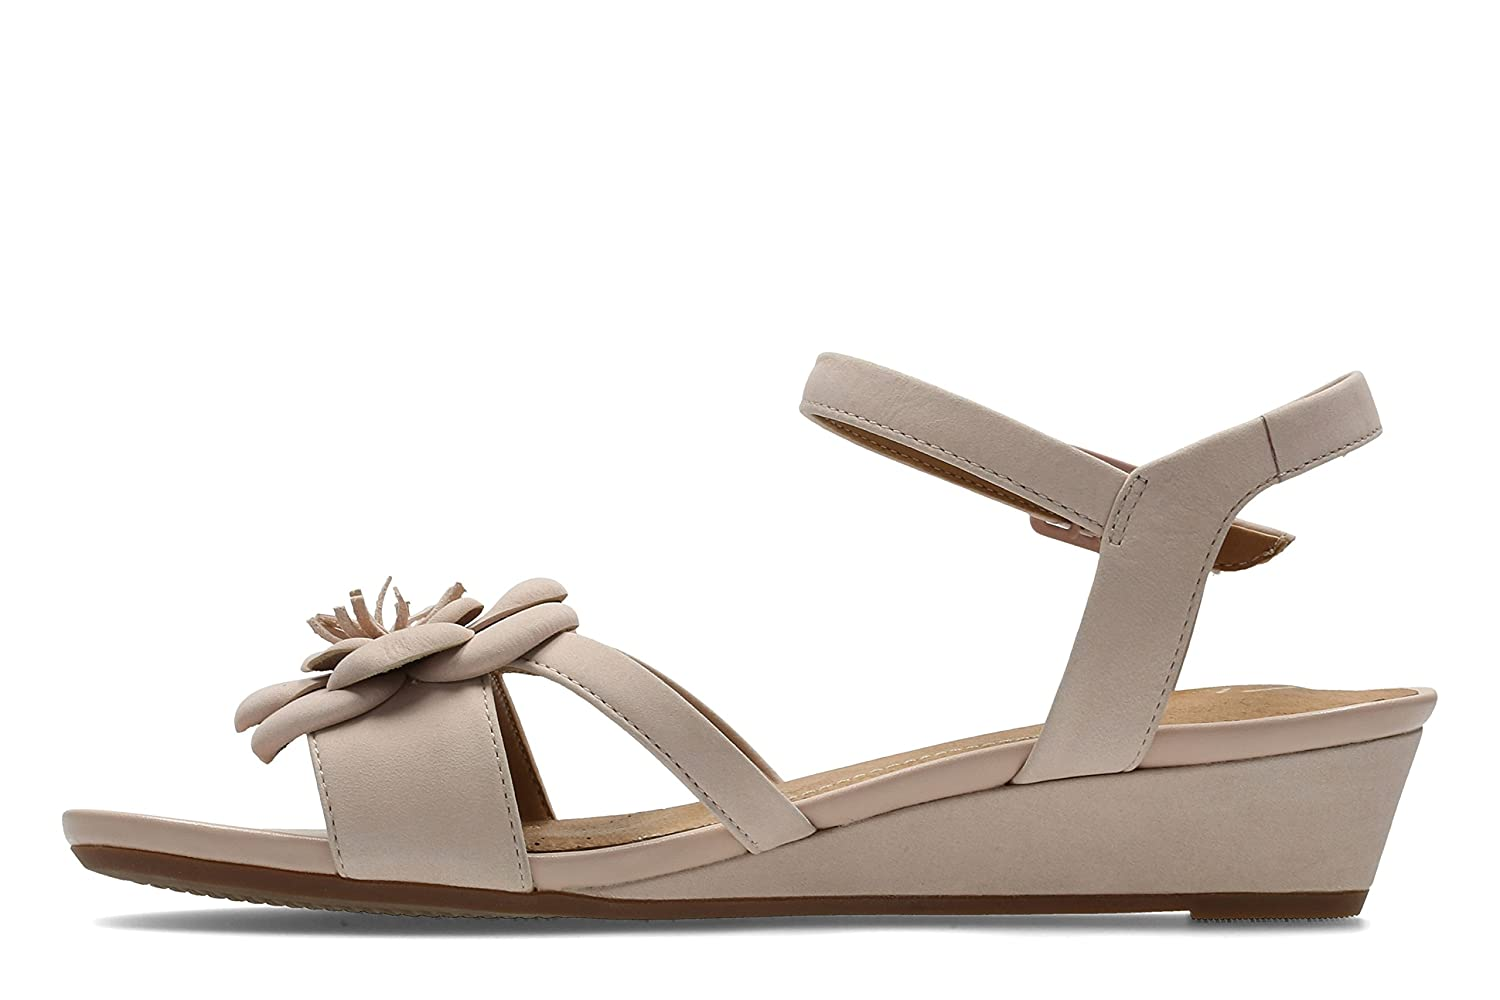 c846df33250 Clarks Parram Stella Nubuck Sandals in Dusty Pink  Amazon.co.uk  Shoes    Bags